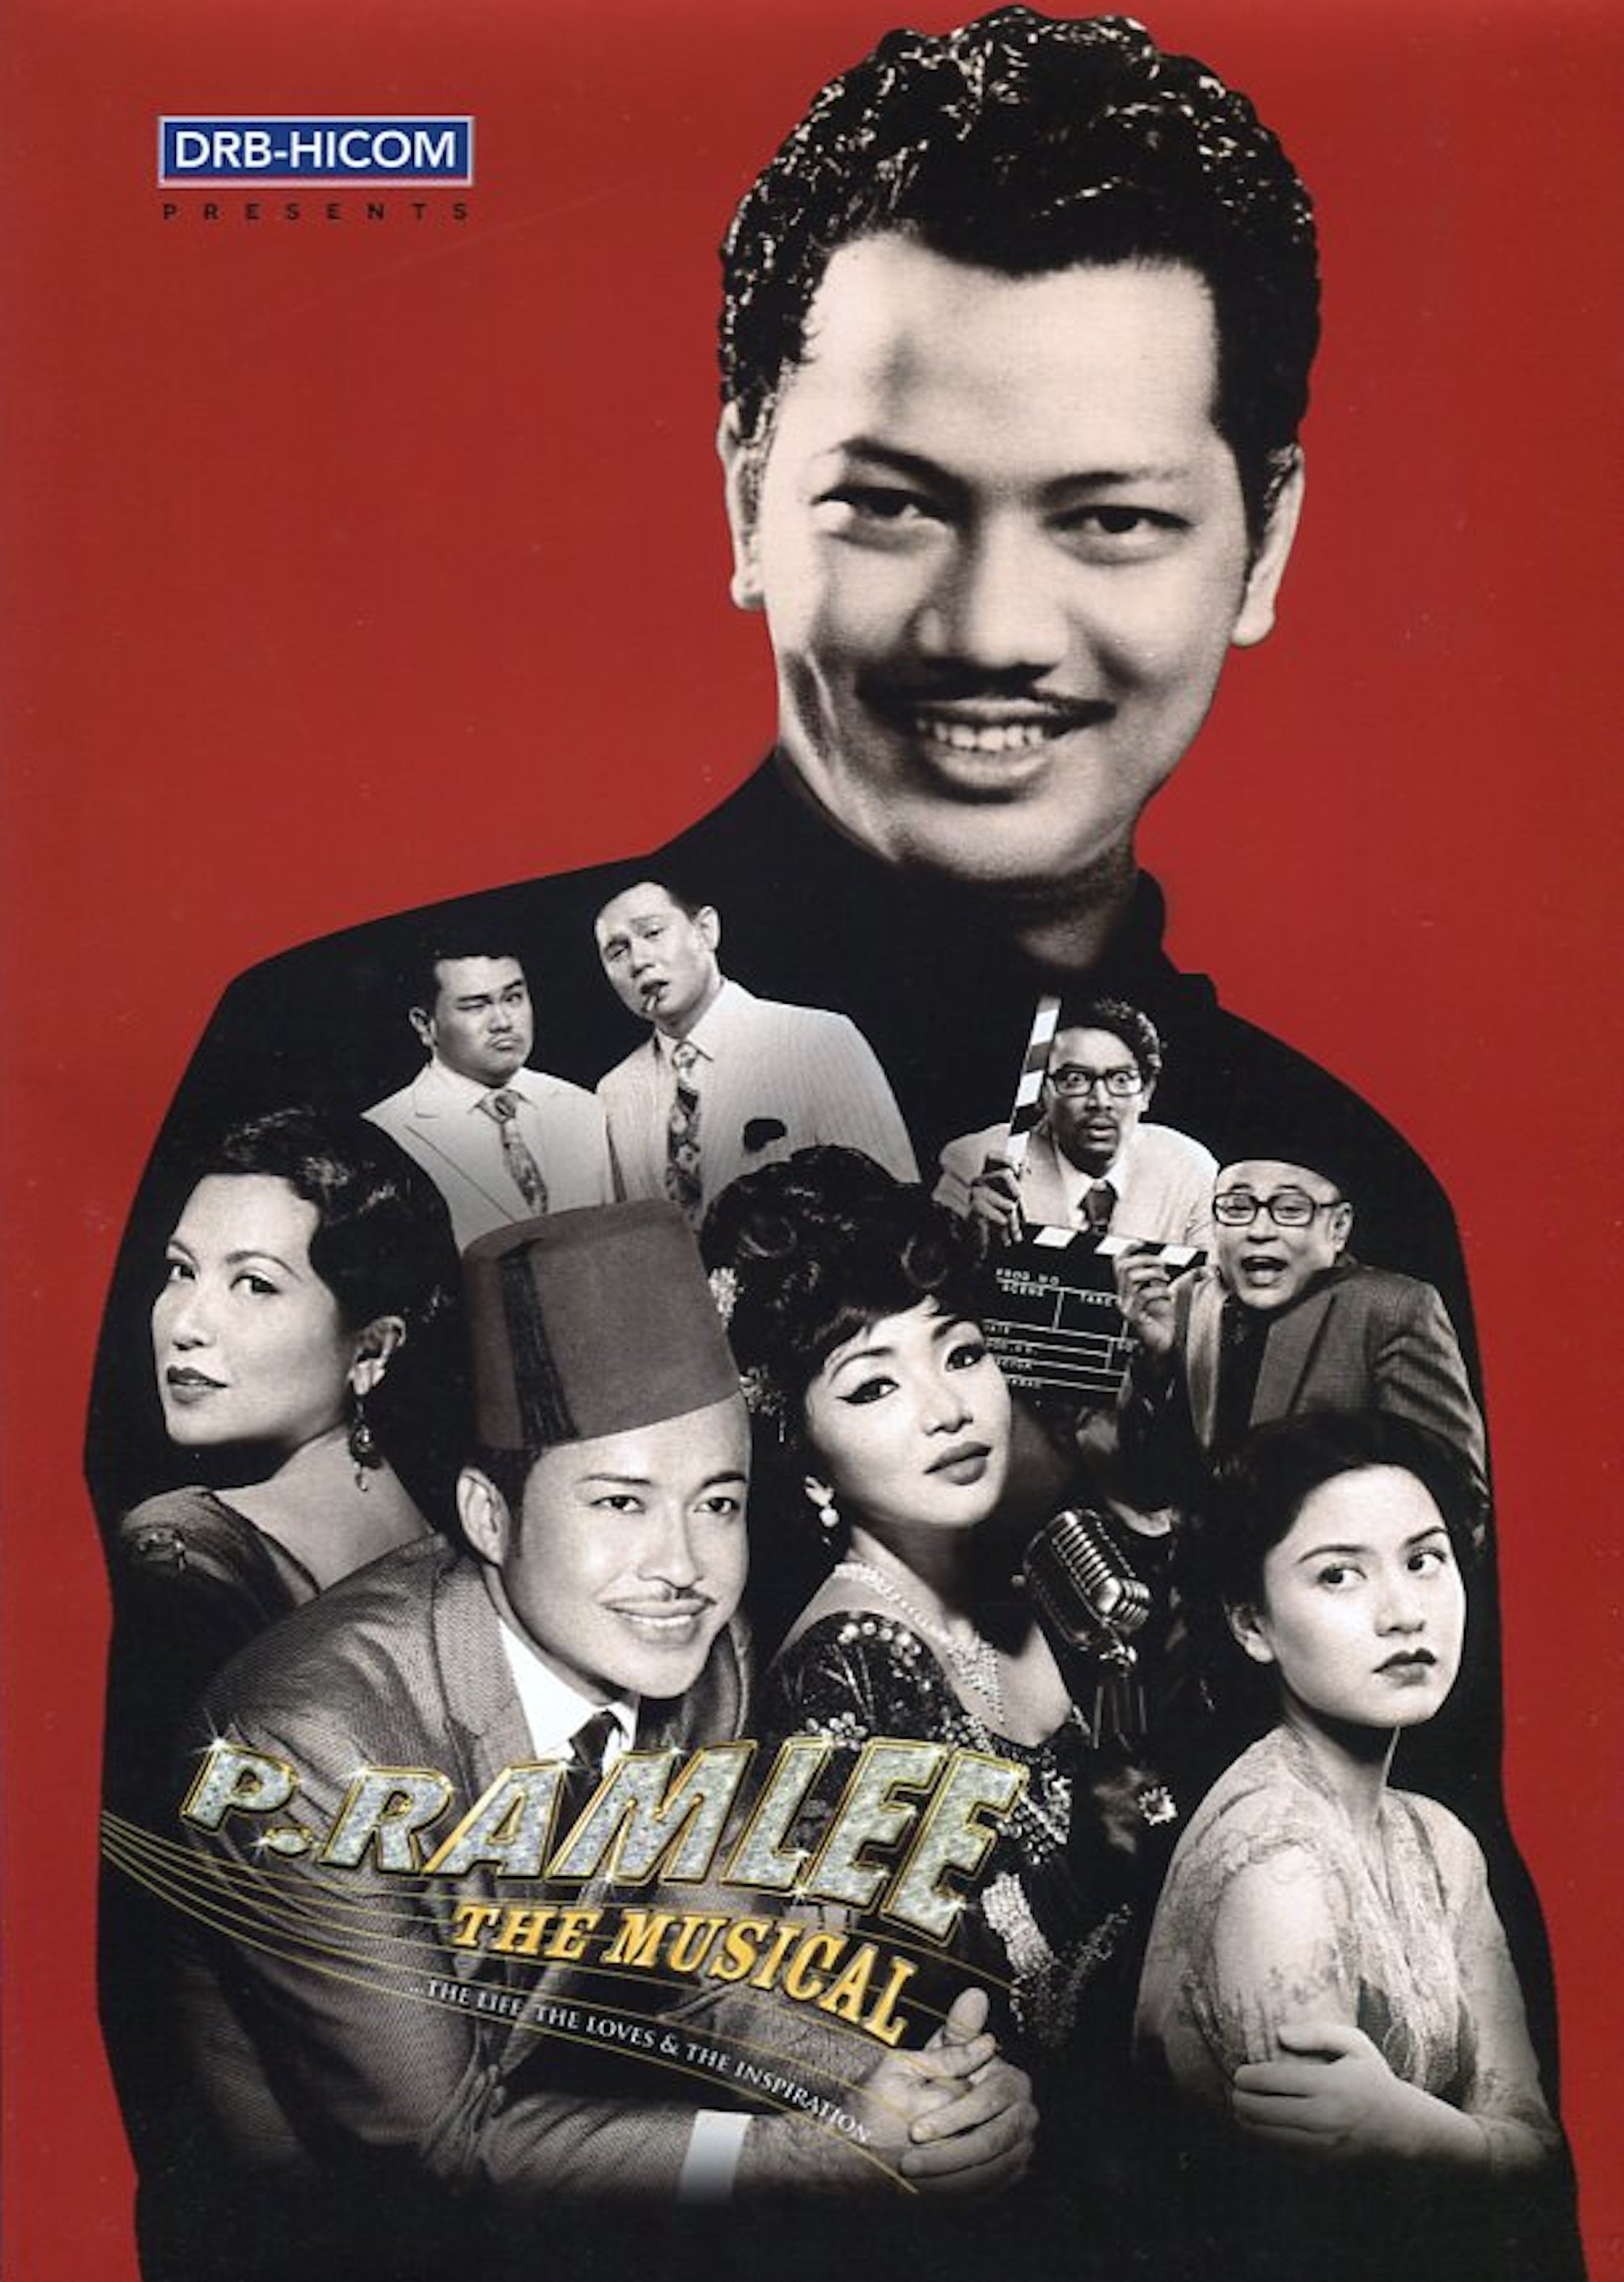 2014 P. Ramlee The Musical cover